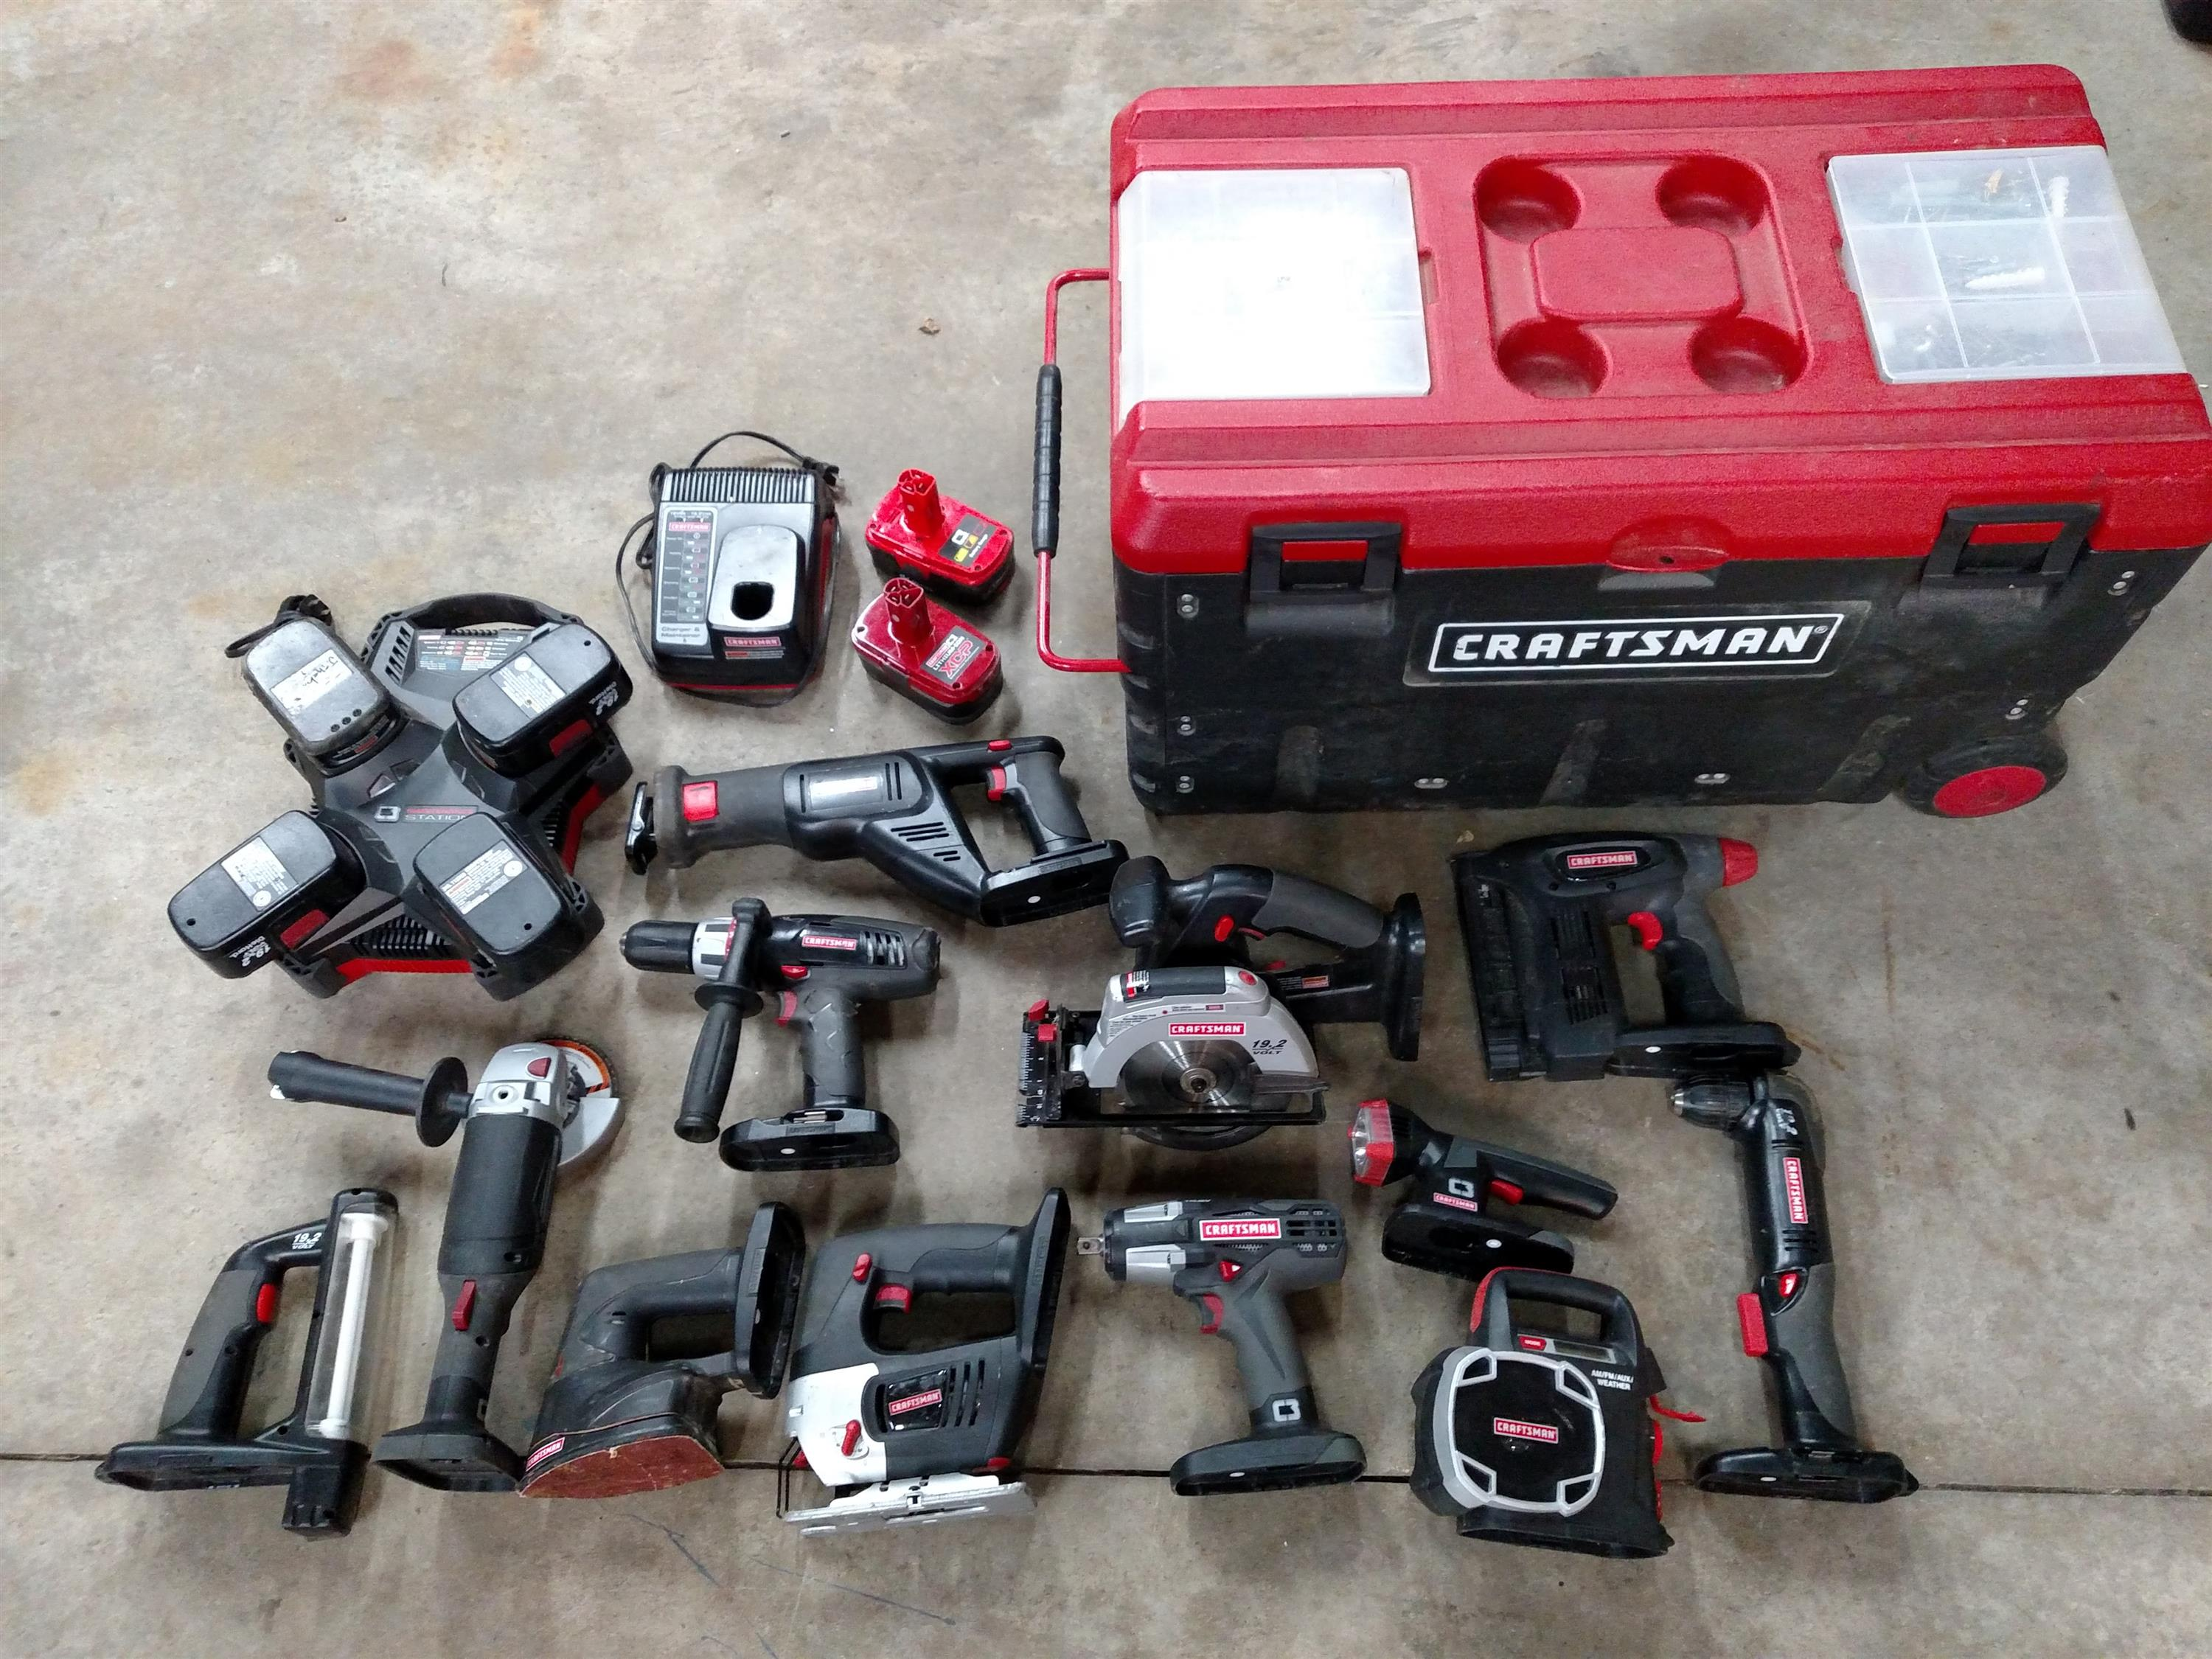 Craftsman C3 Cordless Tools This Is My Favorite Cooler That Doesn T Hold Beer